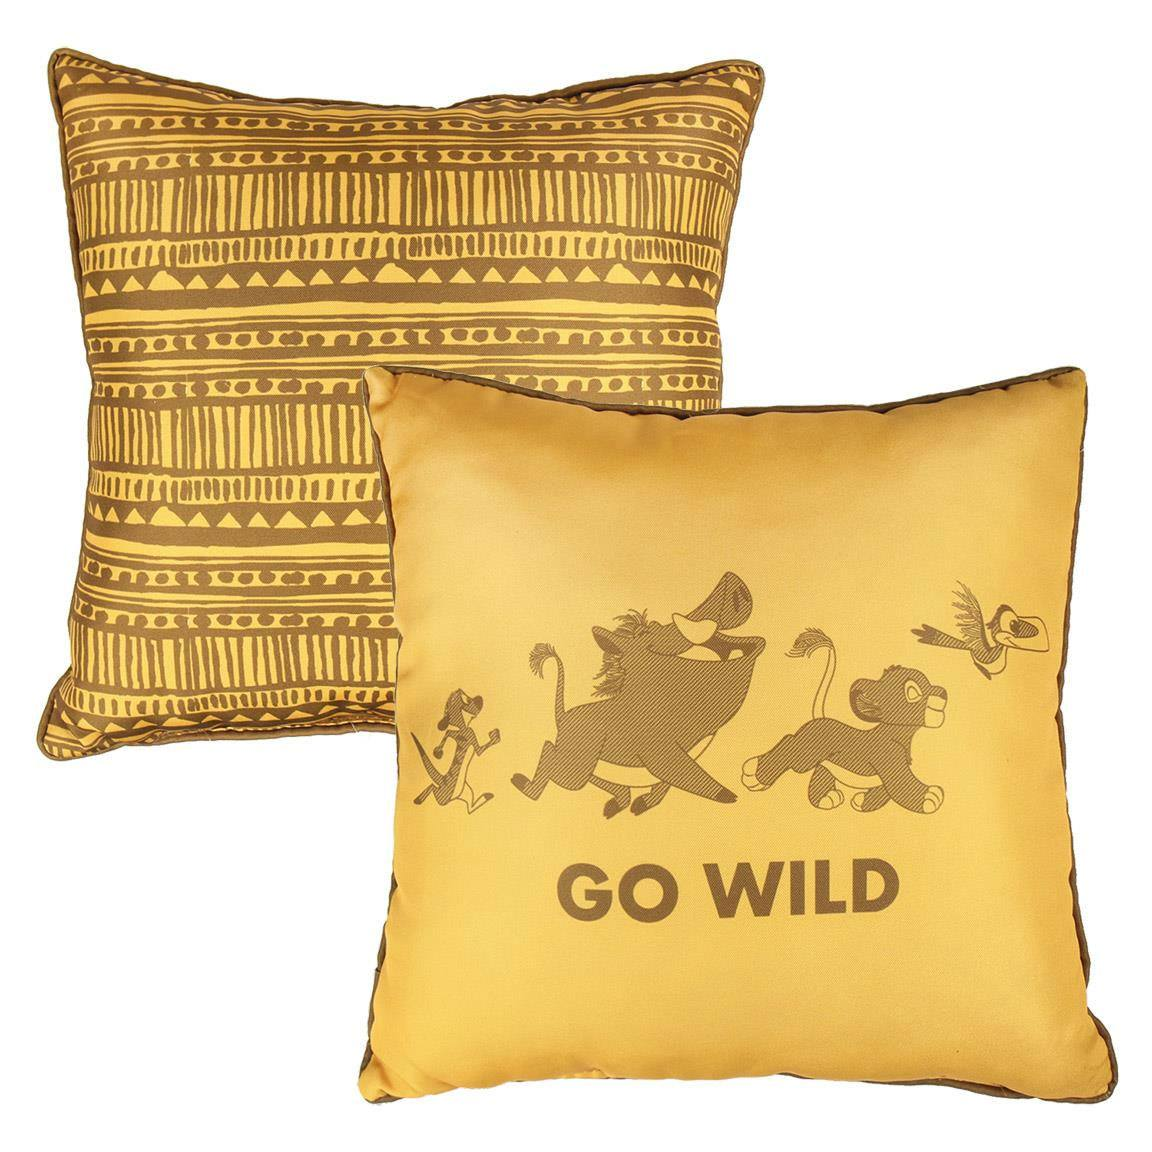 The Lion King Premium Pillow Go Wild 40 x 40 cm